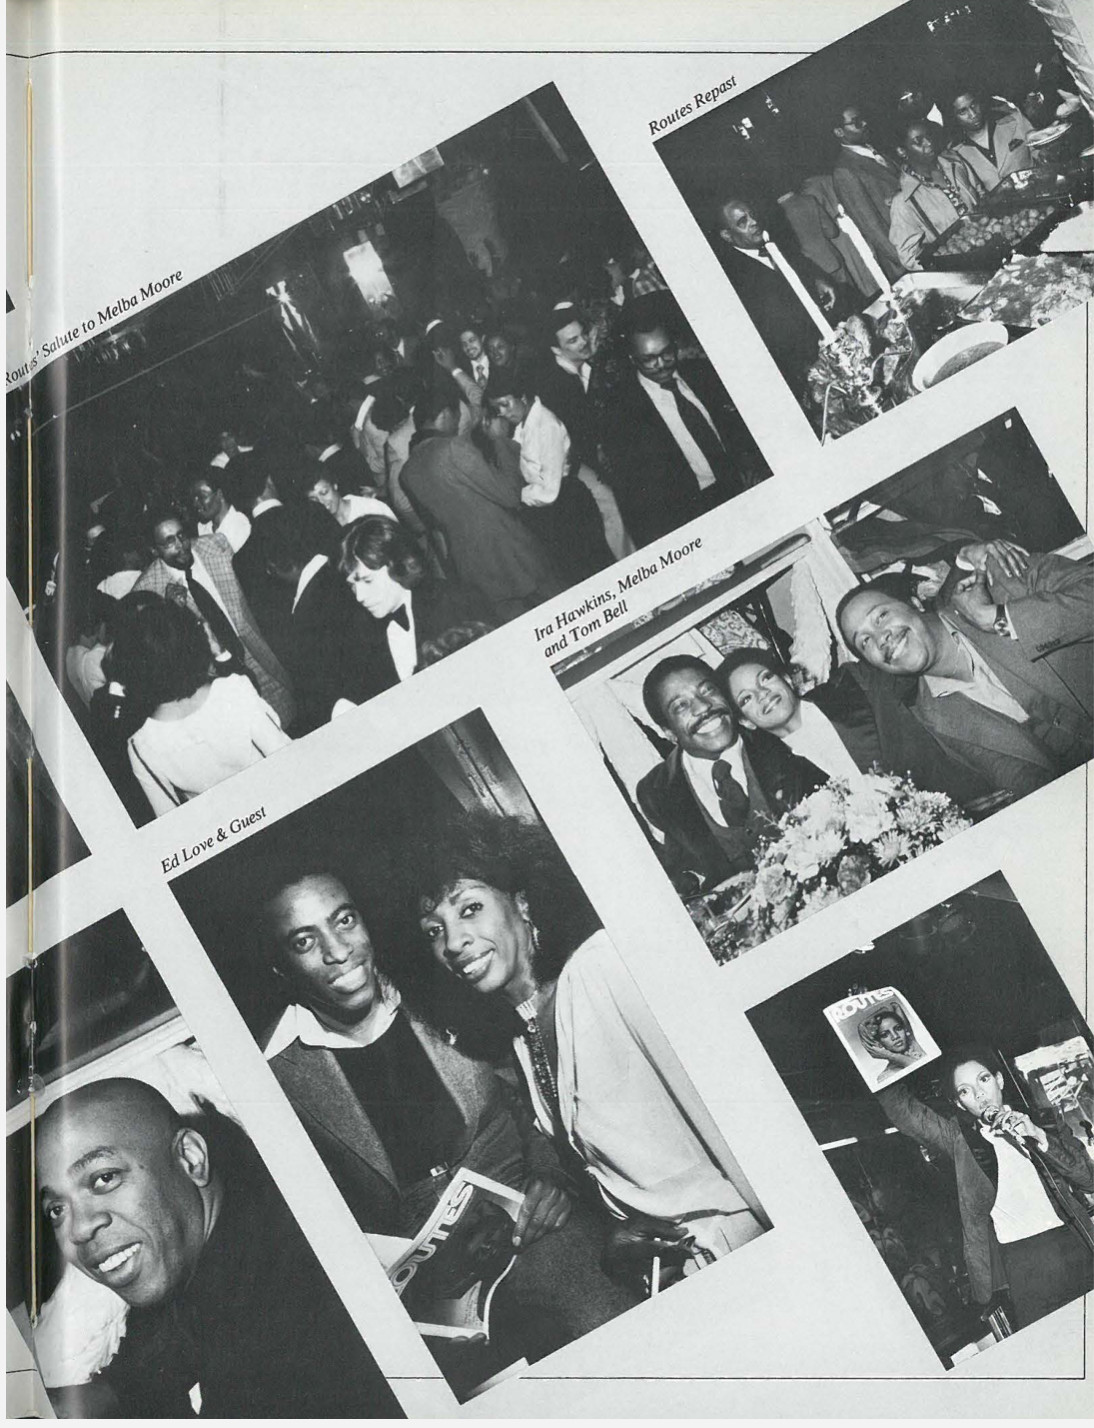 Melba Moore, Ira Hawkins, Tom Bell, Ed Love, Geoffrey Holder